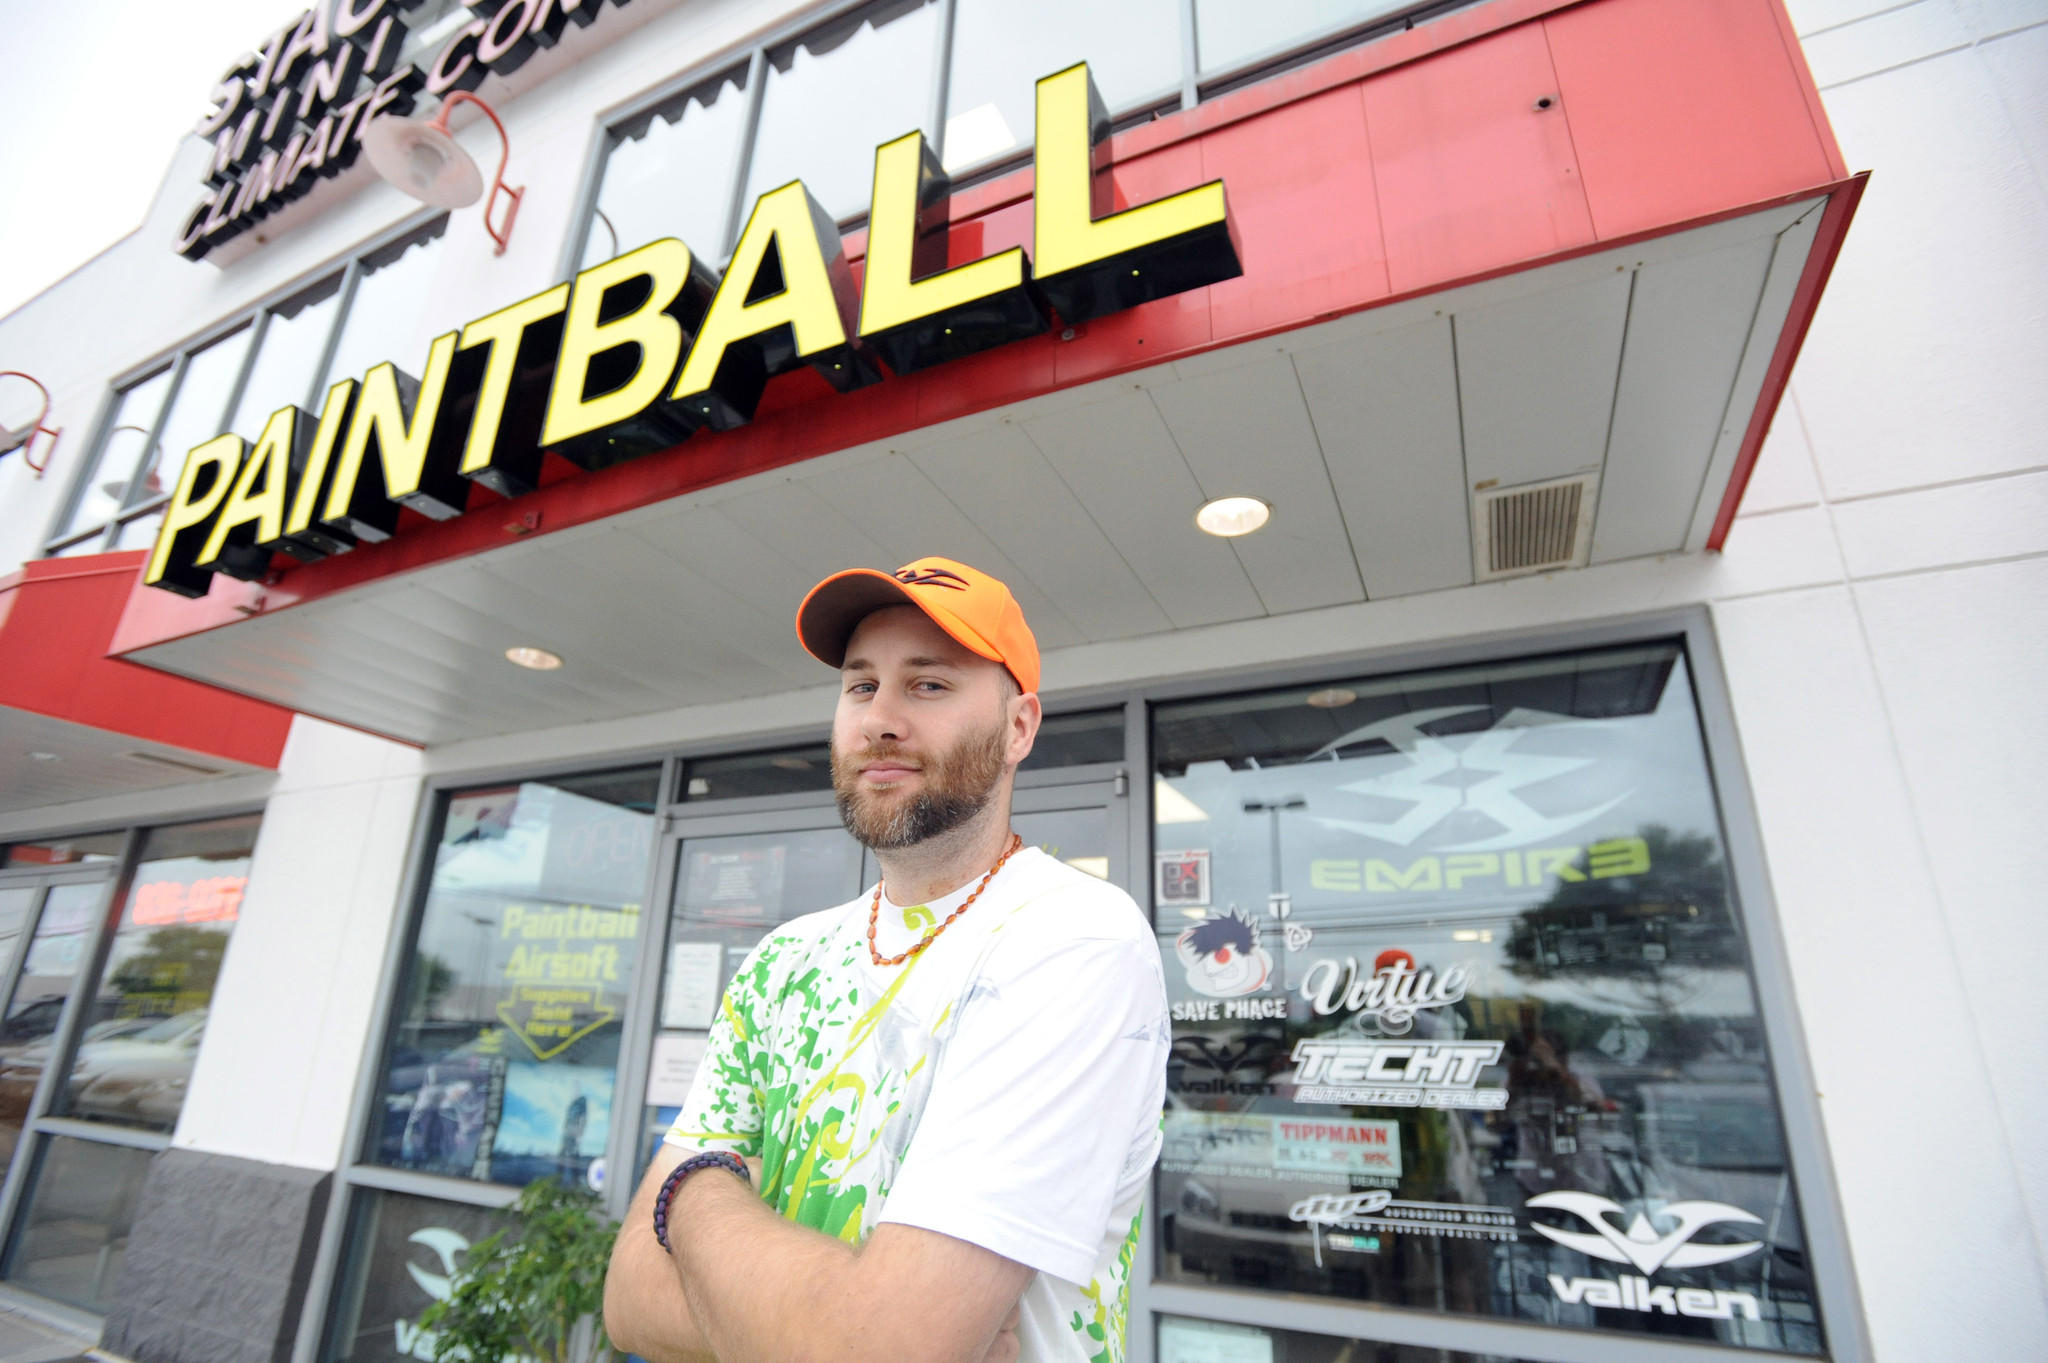 Richard Shepler, owner of Pandemic Outfitters in Bel Air, turned his paintball hobby into a full-time business.